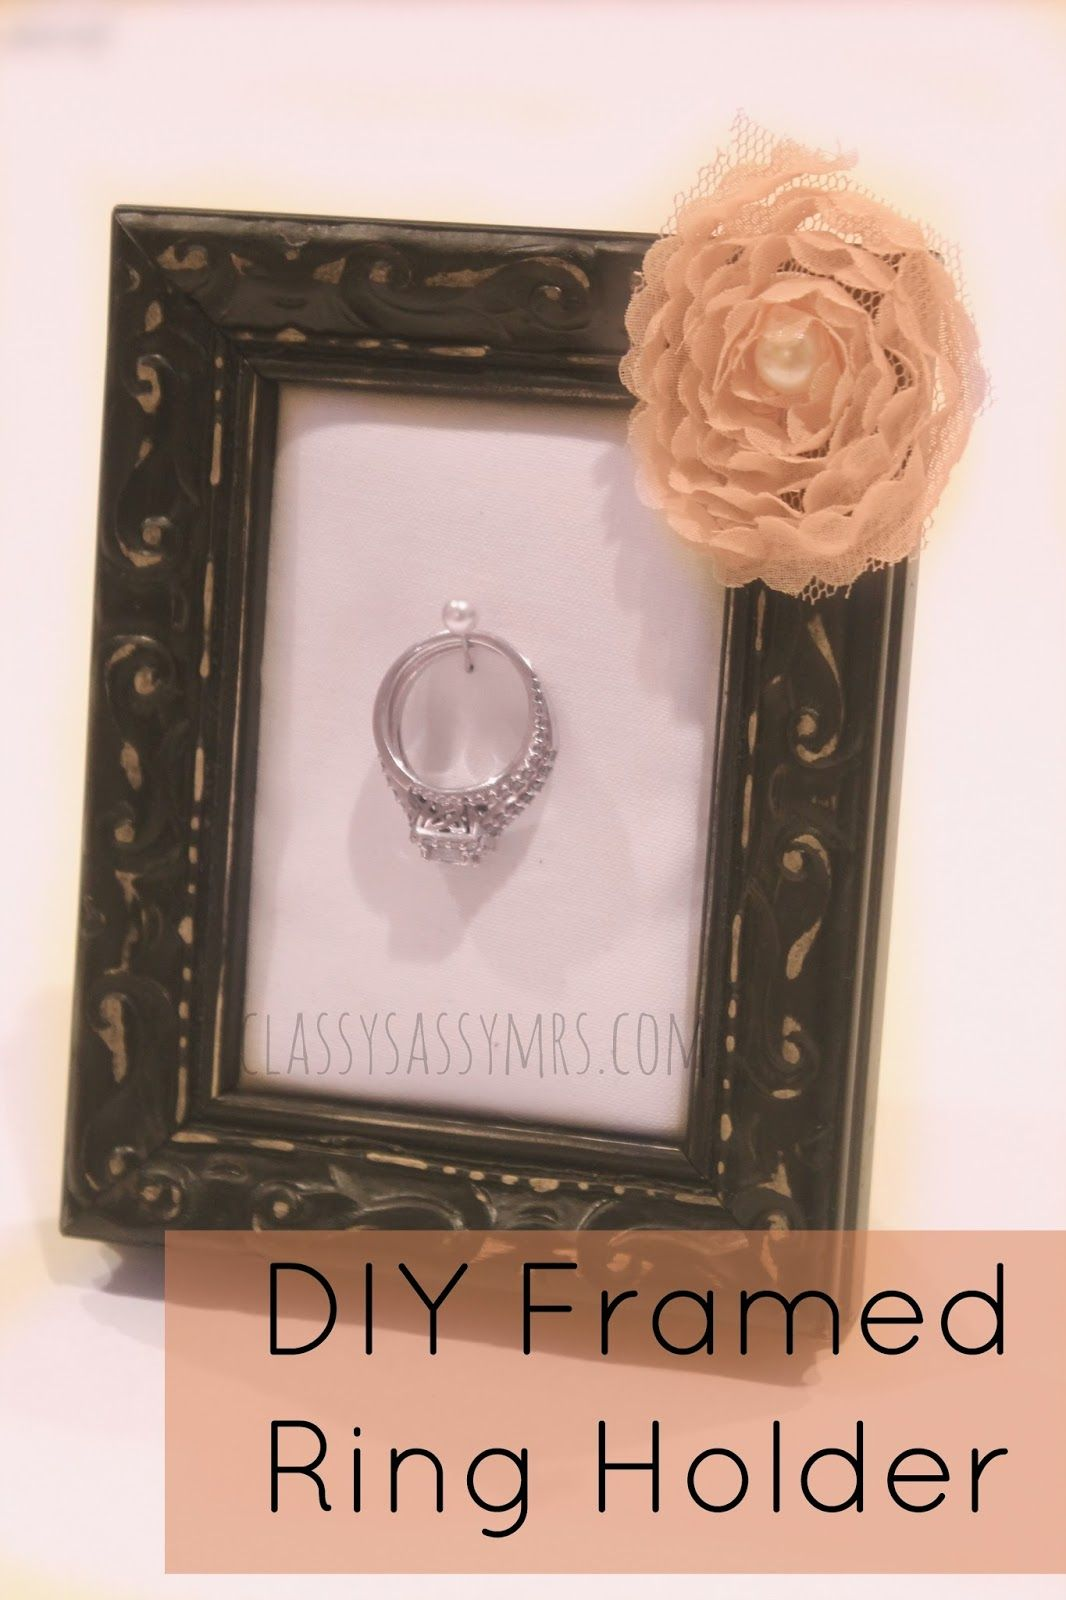 DIY Framed Ring Holder | d i y // ✄ | Pinterest